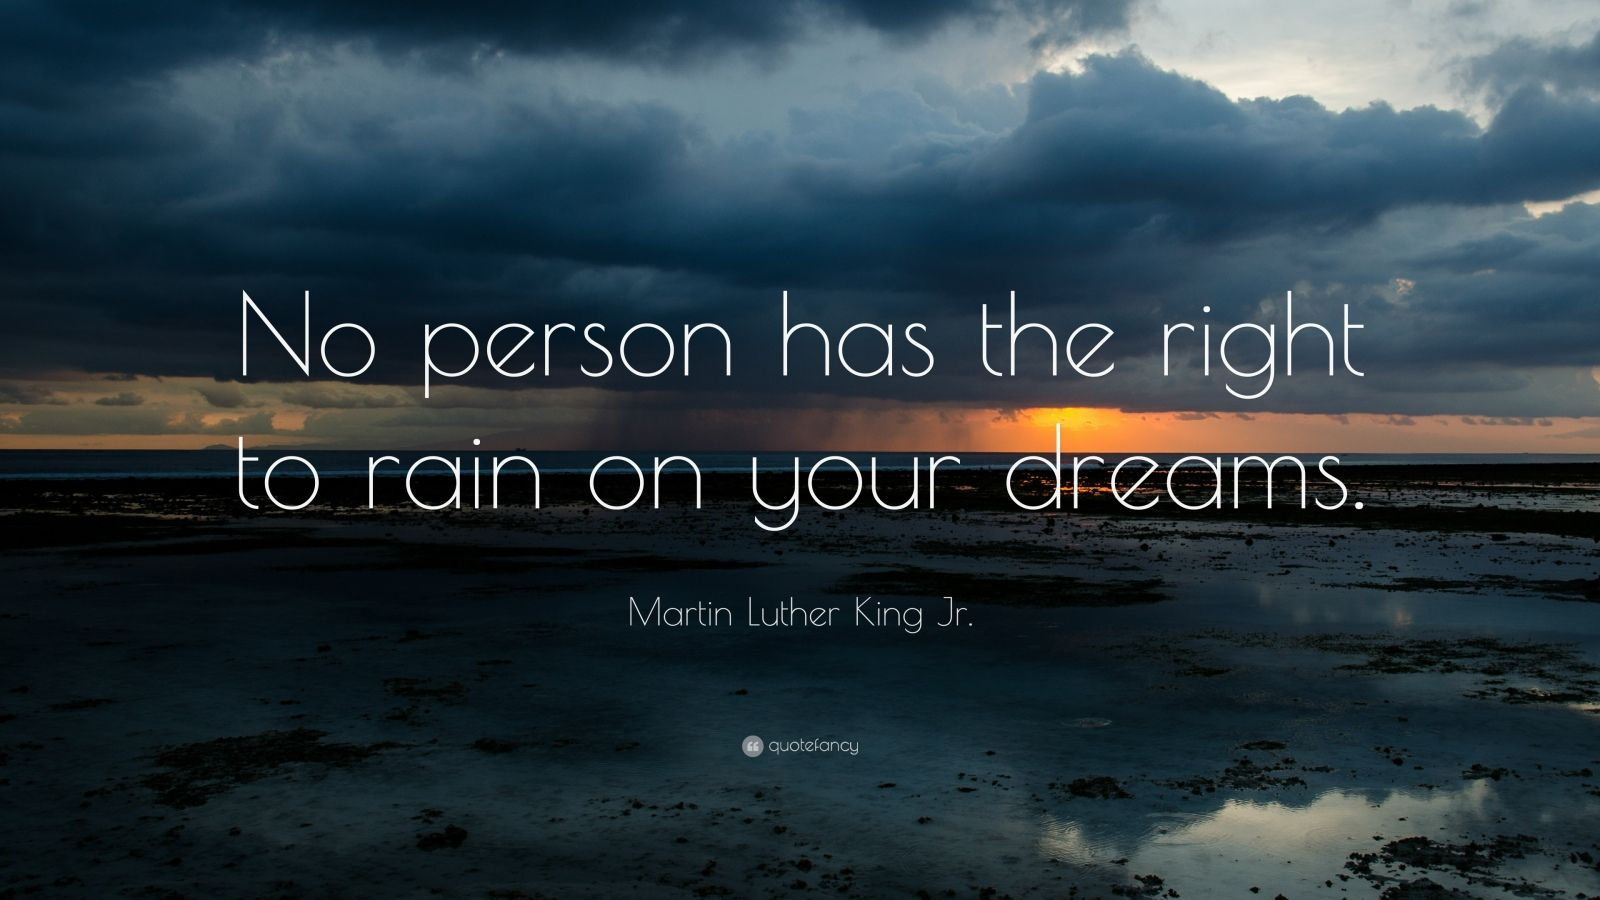 Martin Luther King Jr. Quotes (100 wallpapers) - Quotefancy - photo#42